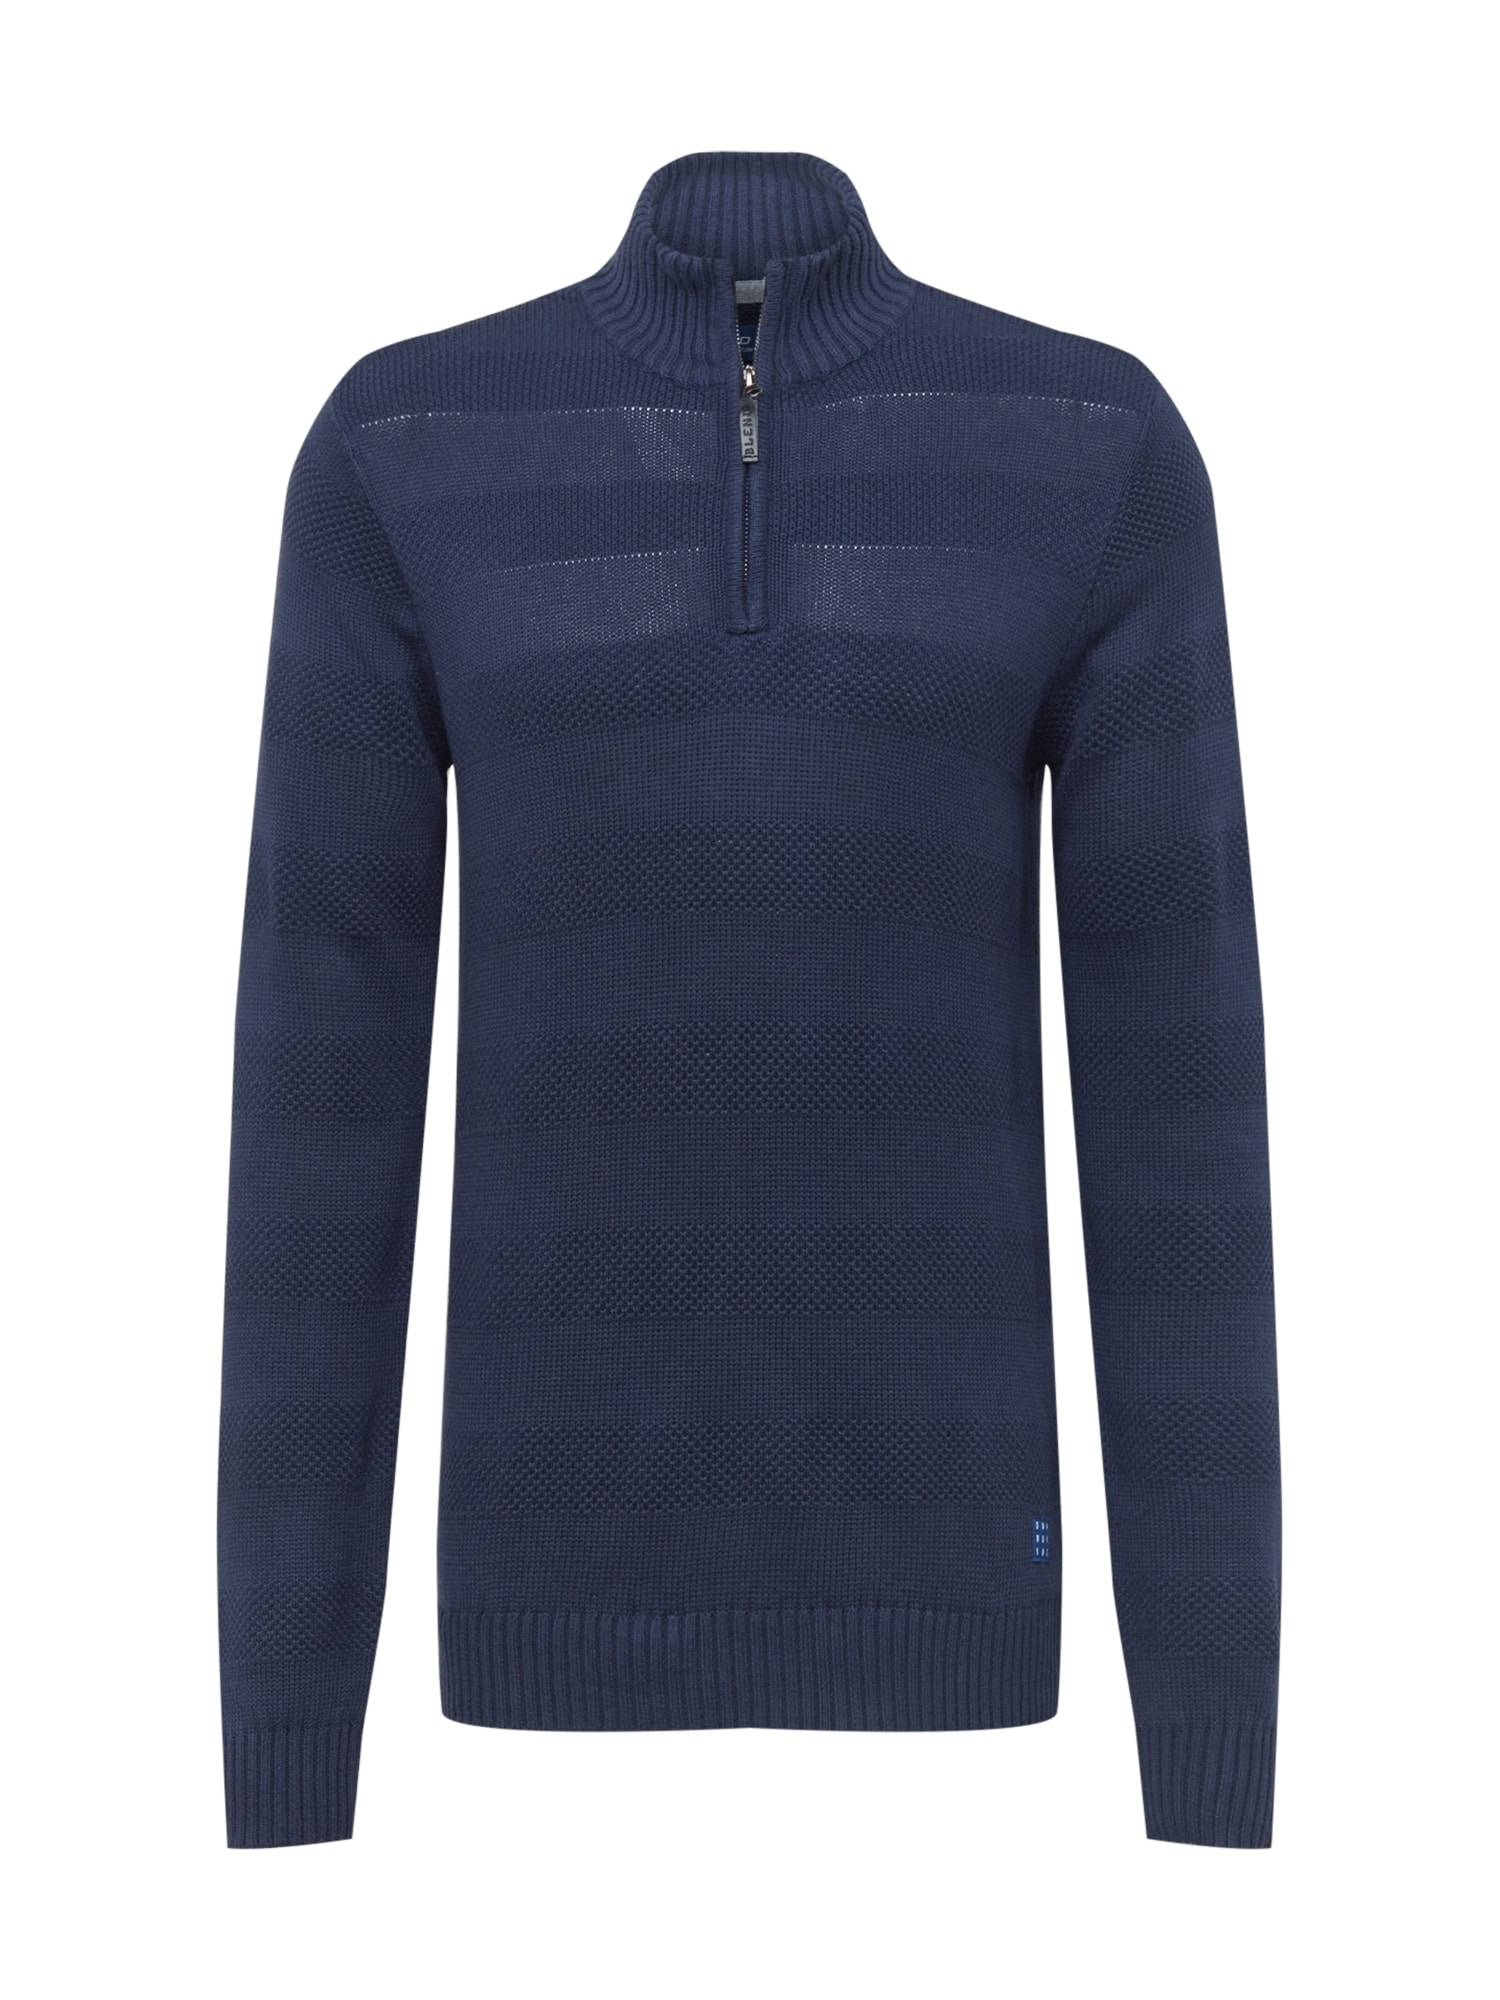 BLEND Pull-over 'Nantes'  - Bleu - Taille: XXL - male